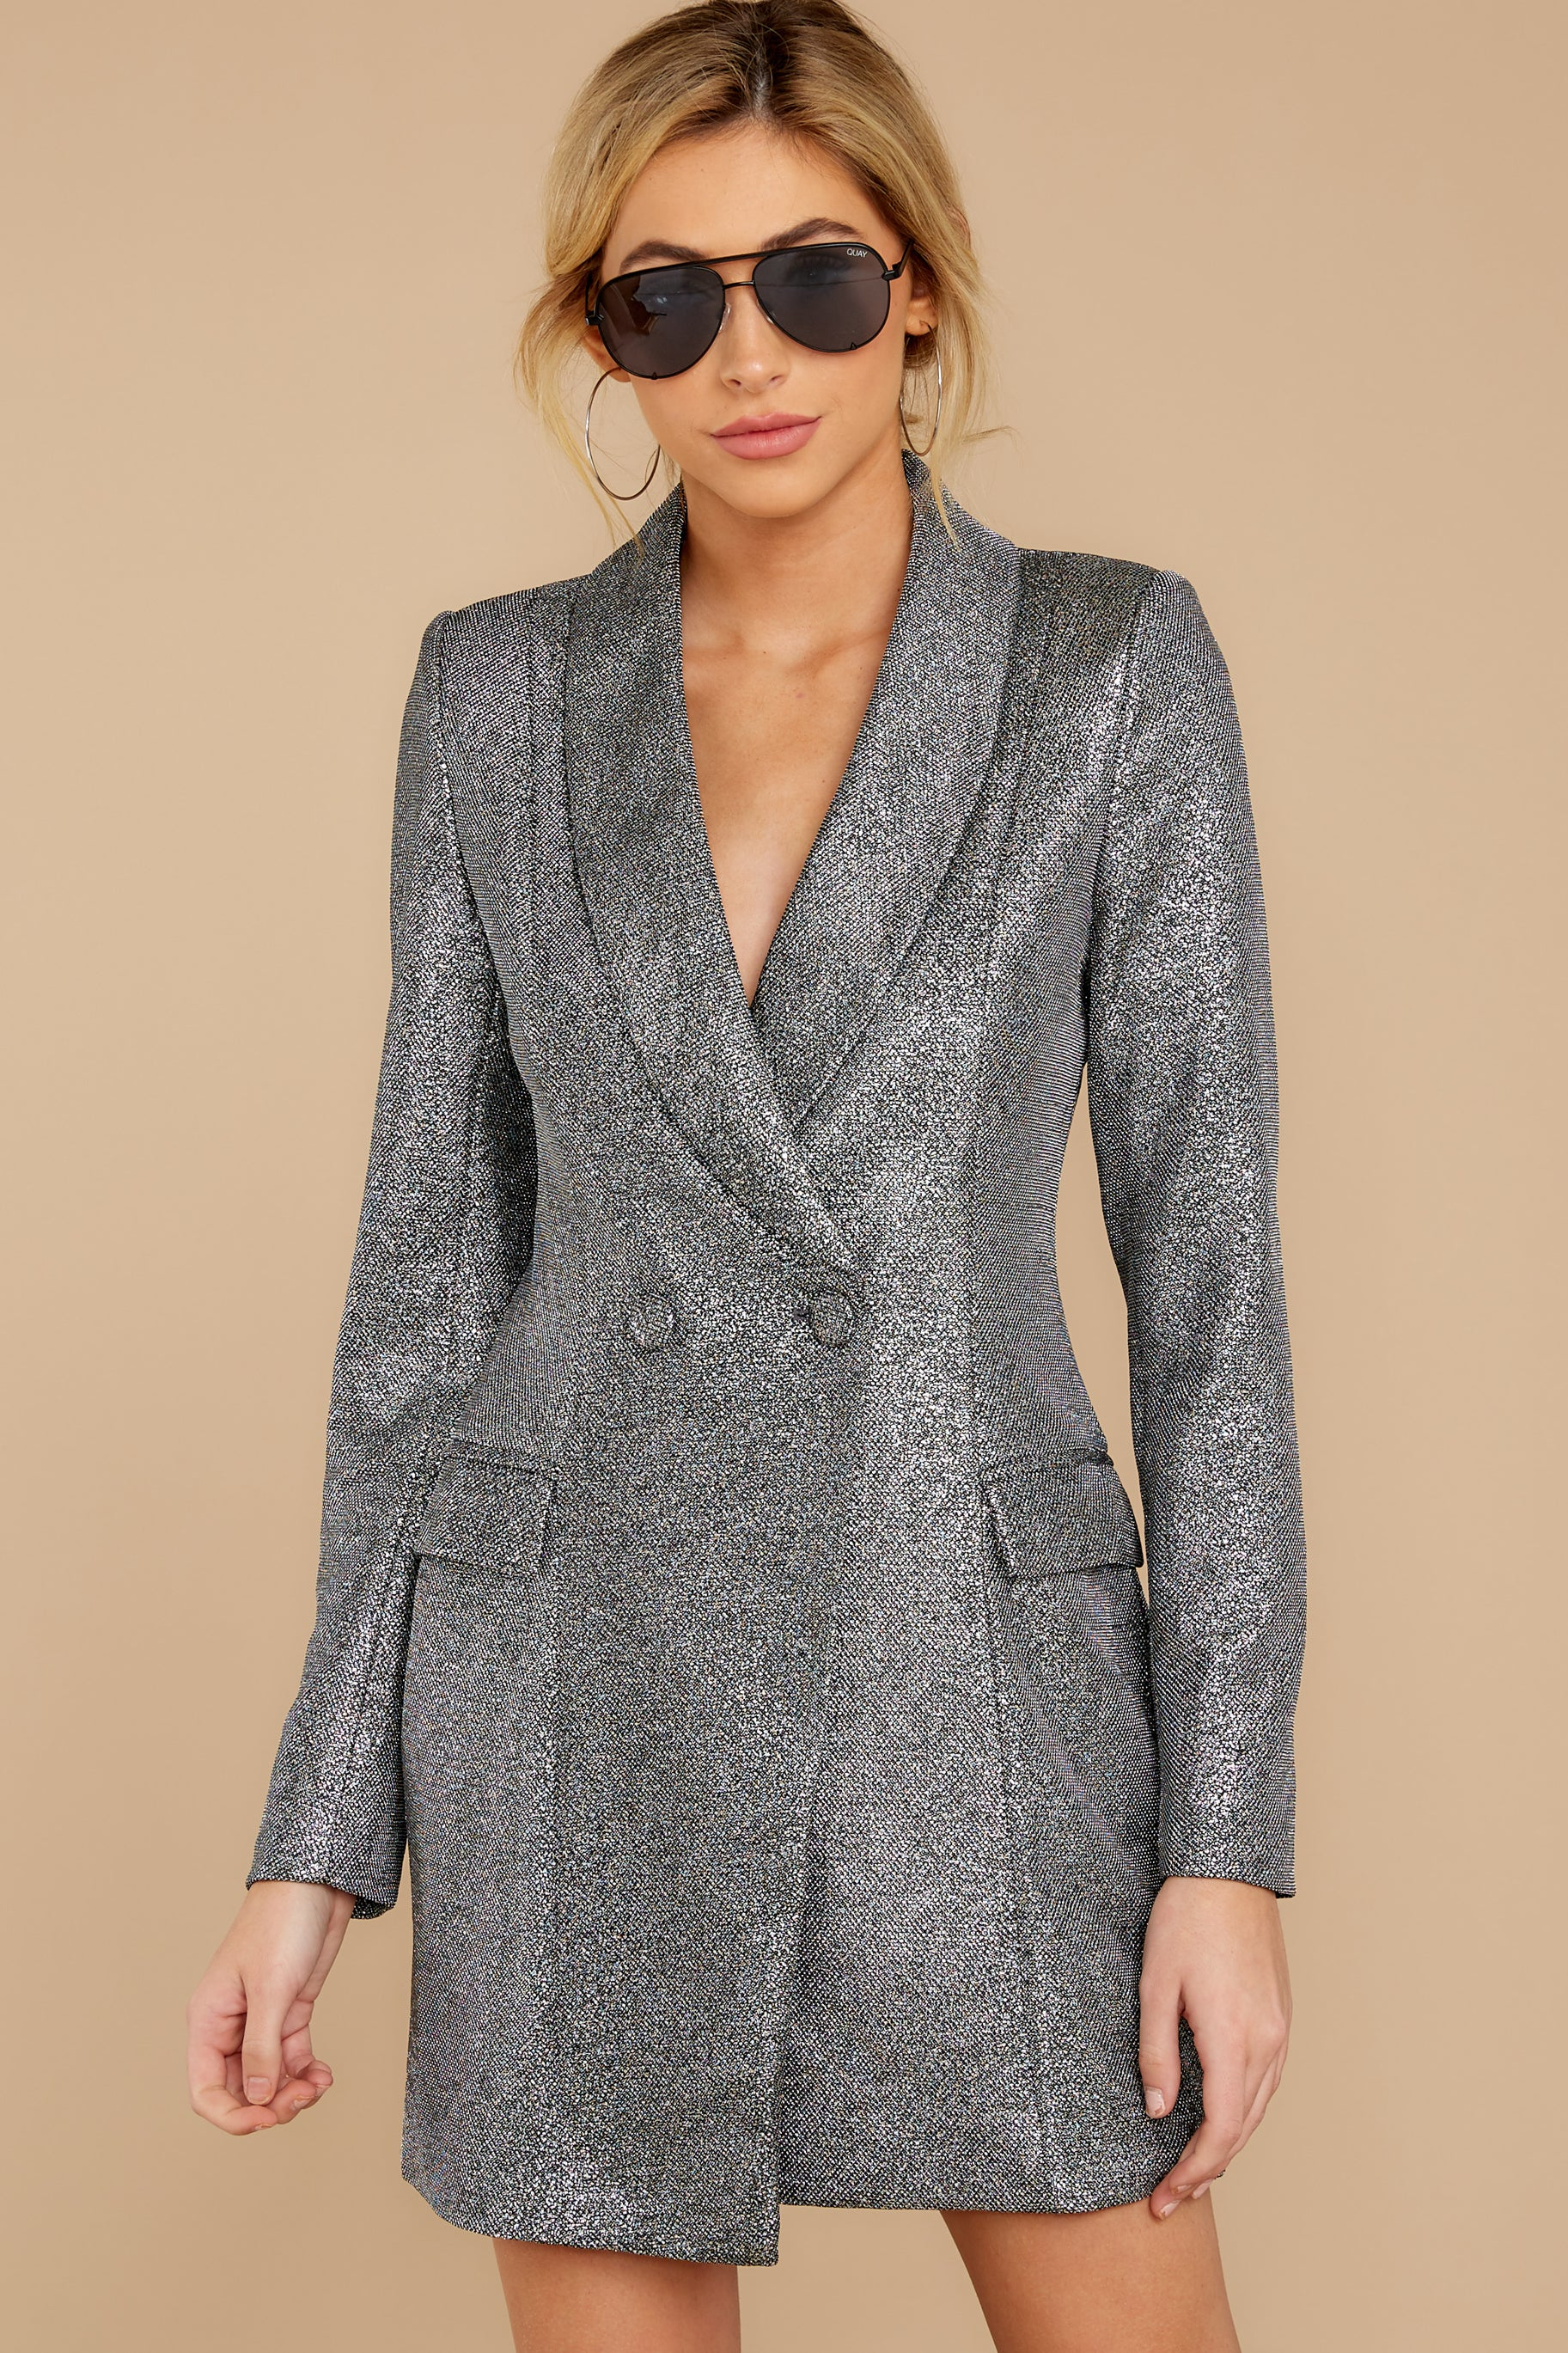 6 Reign Supreme Silver Blazer Dress at reddressboutique.com